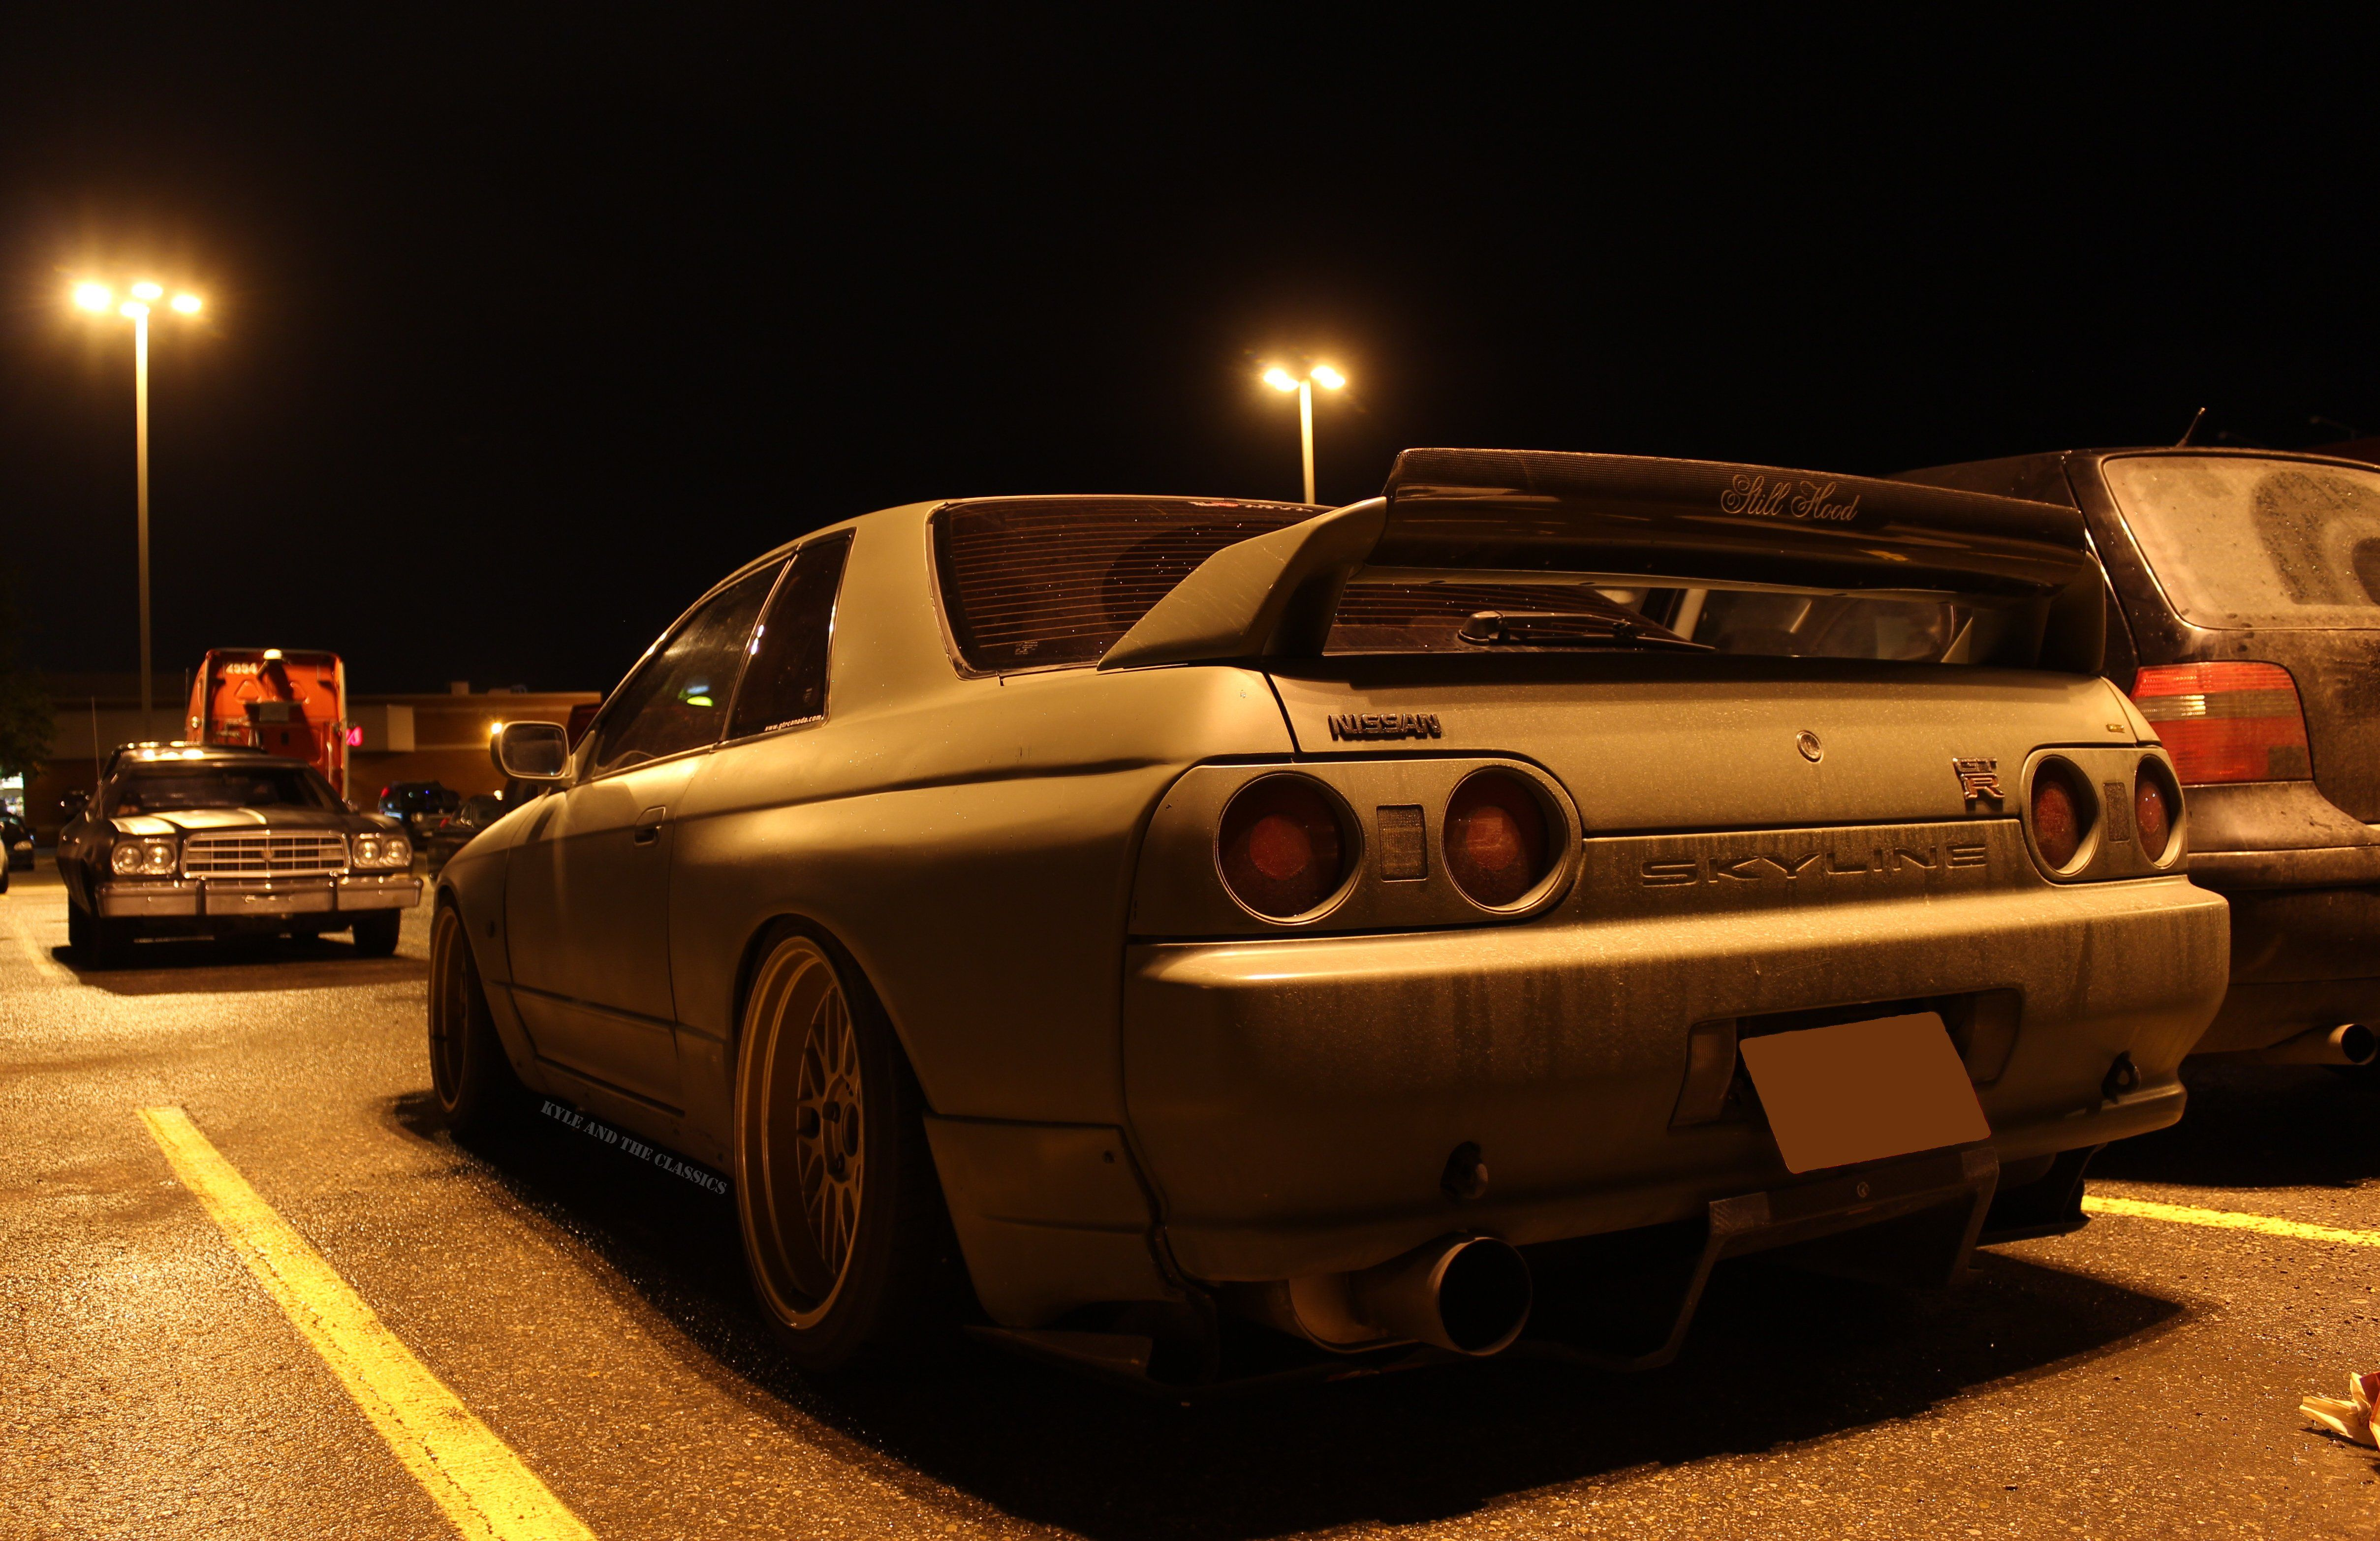 1989 Nissan Skyline R32 GT-R wallpaper | 4836x3132 | 553920 ...